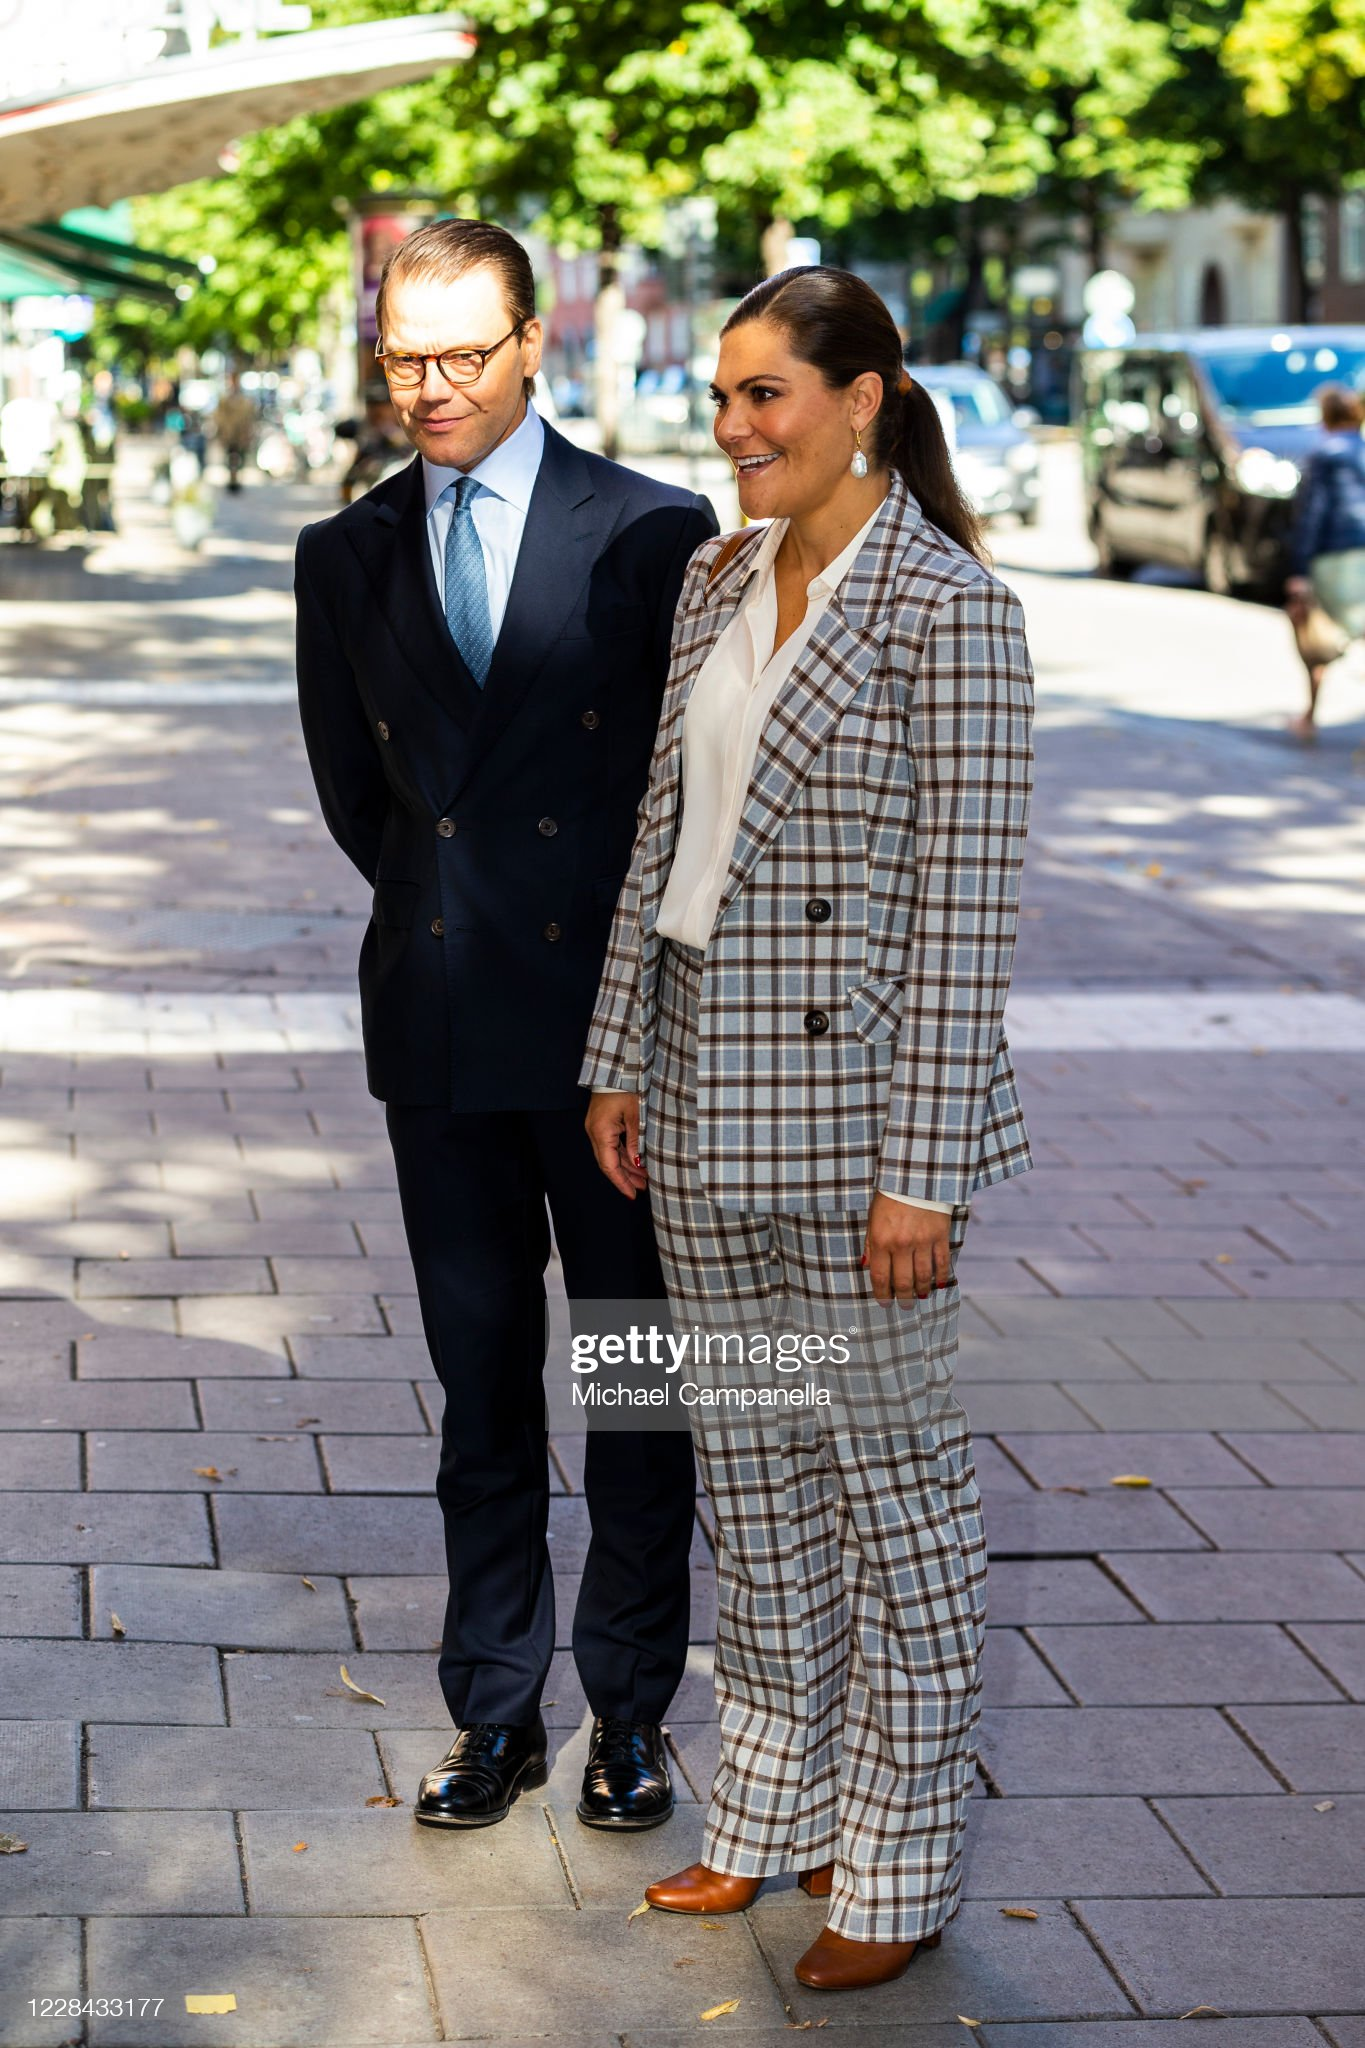 crown-princess-victoria-and-prince-daniel-of-sweden-visit-the-swedish-picture-id1228433177